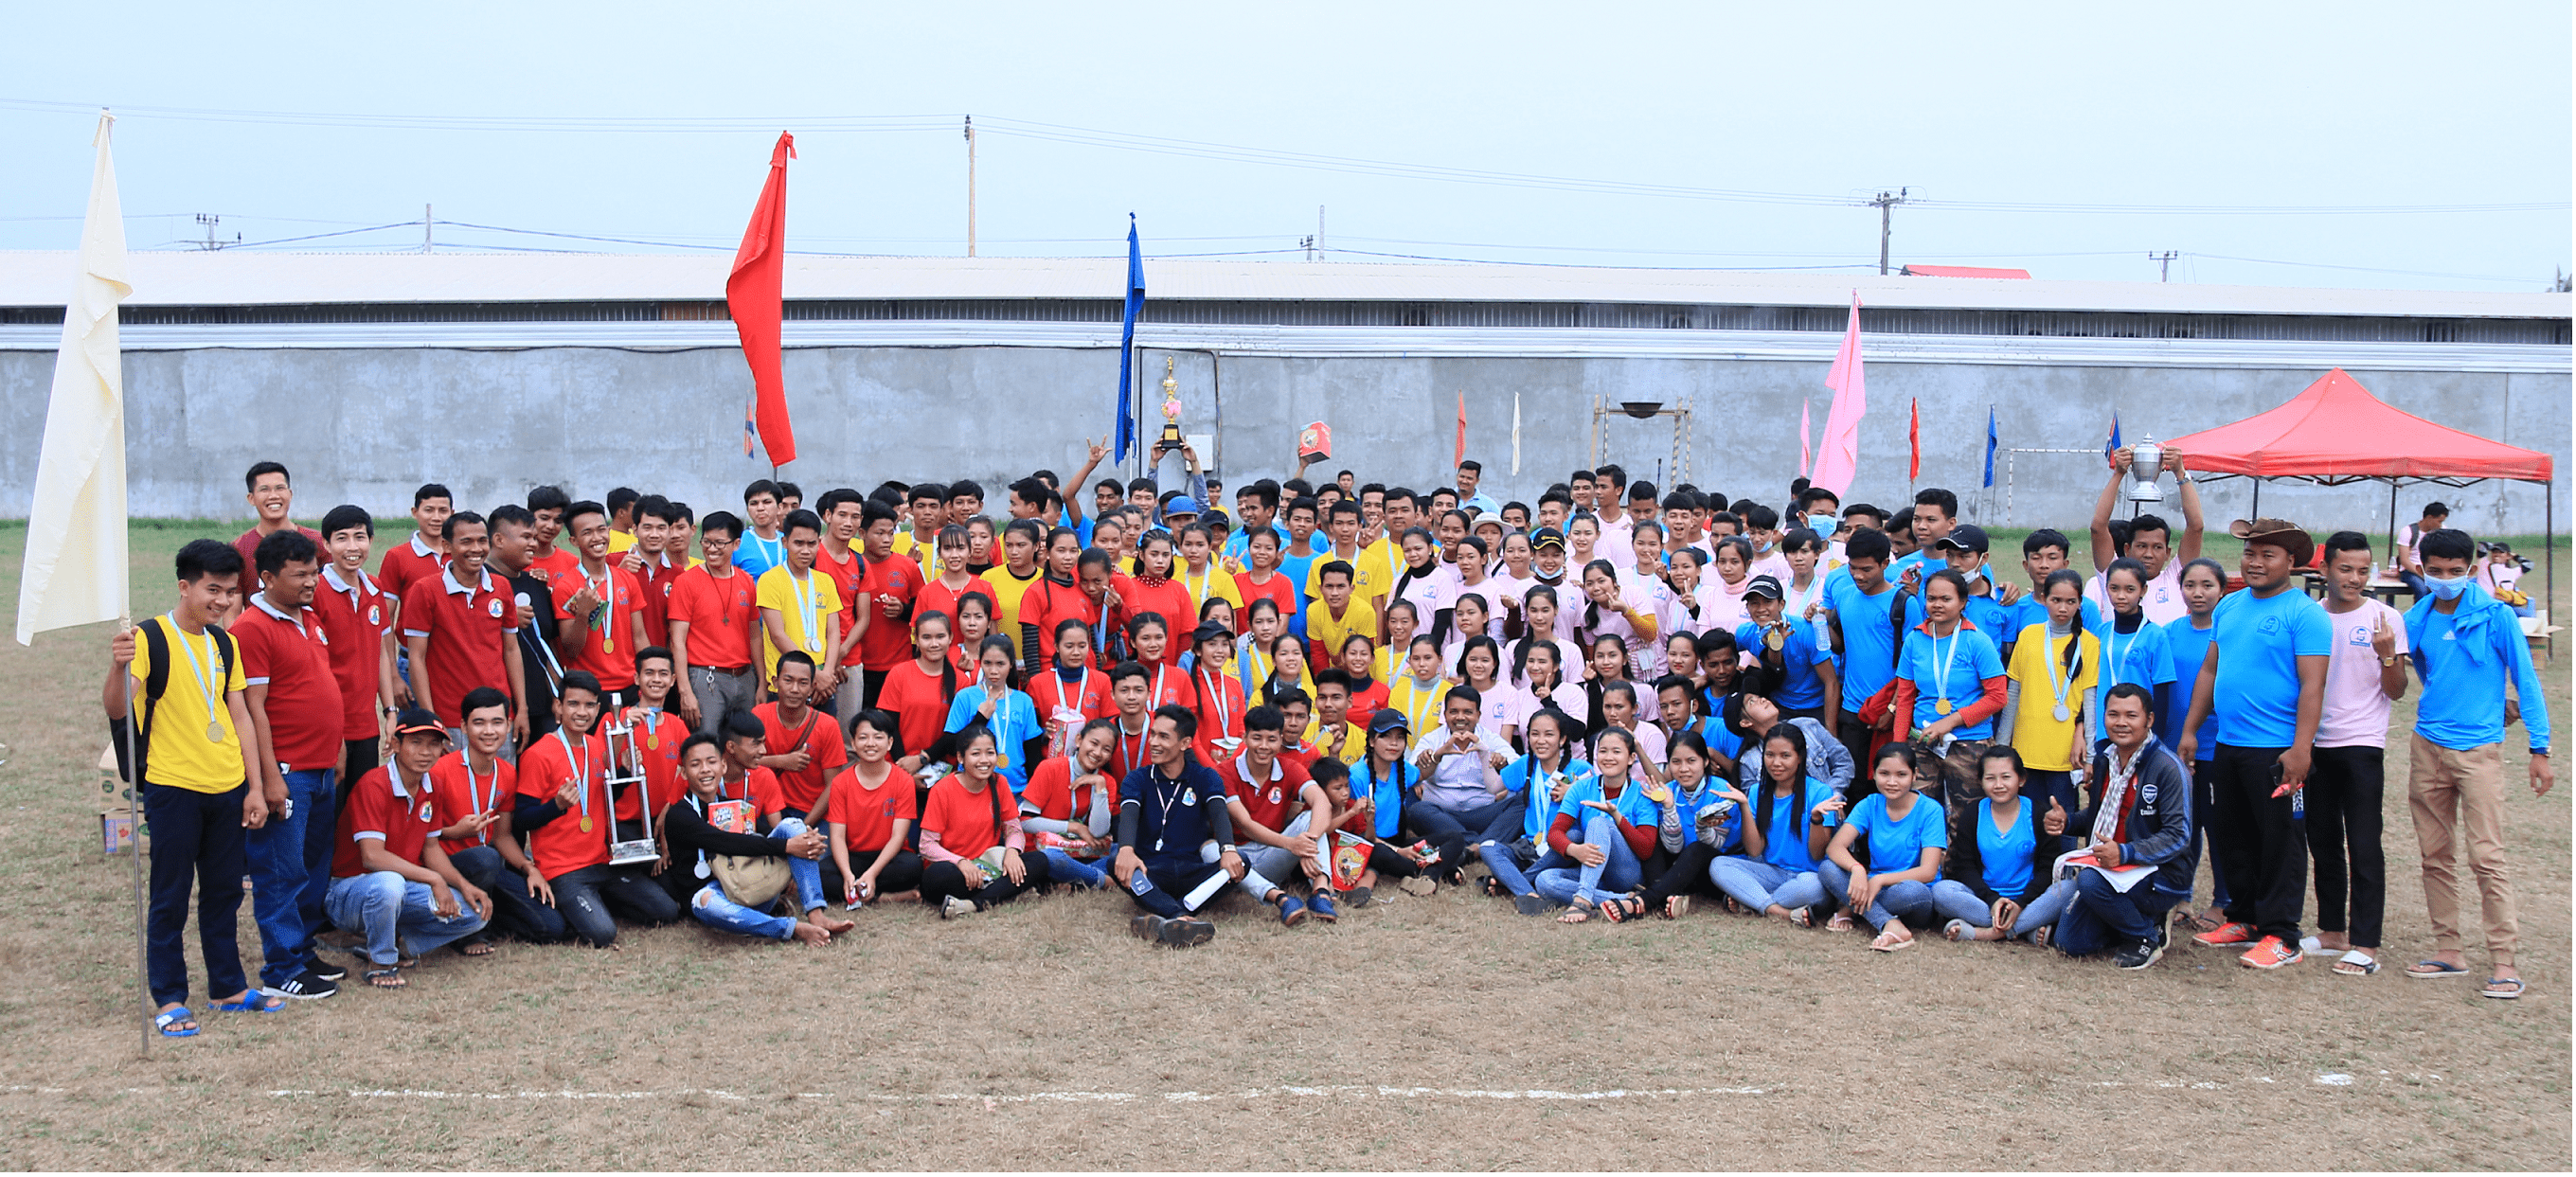 Don Bosco Feast or Color Sport day